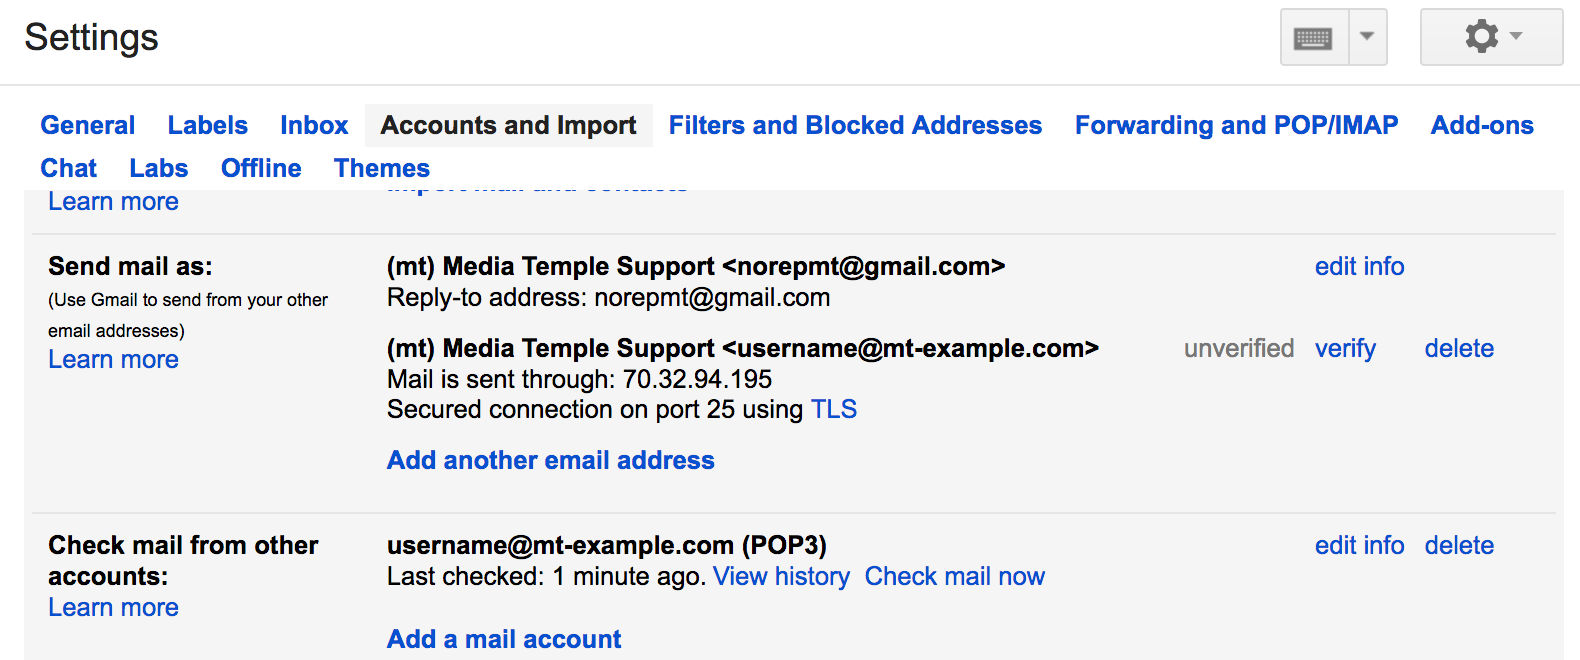 How Do I Use Gmail To View My Media Temple Email Media Temple